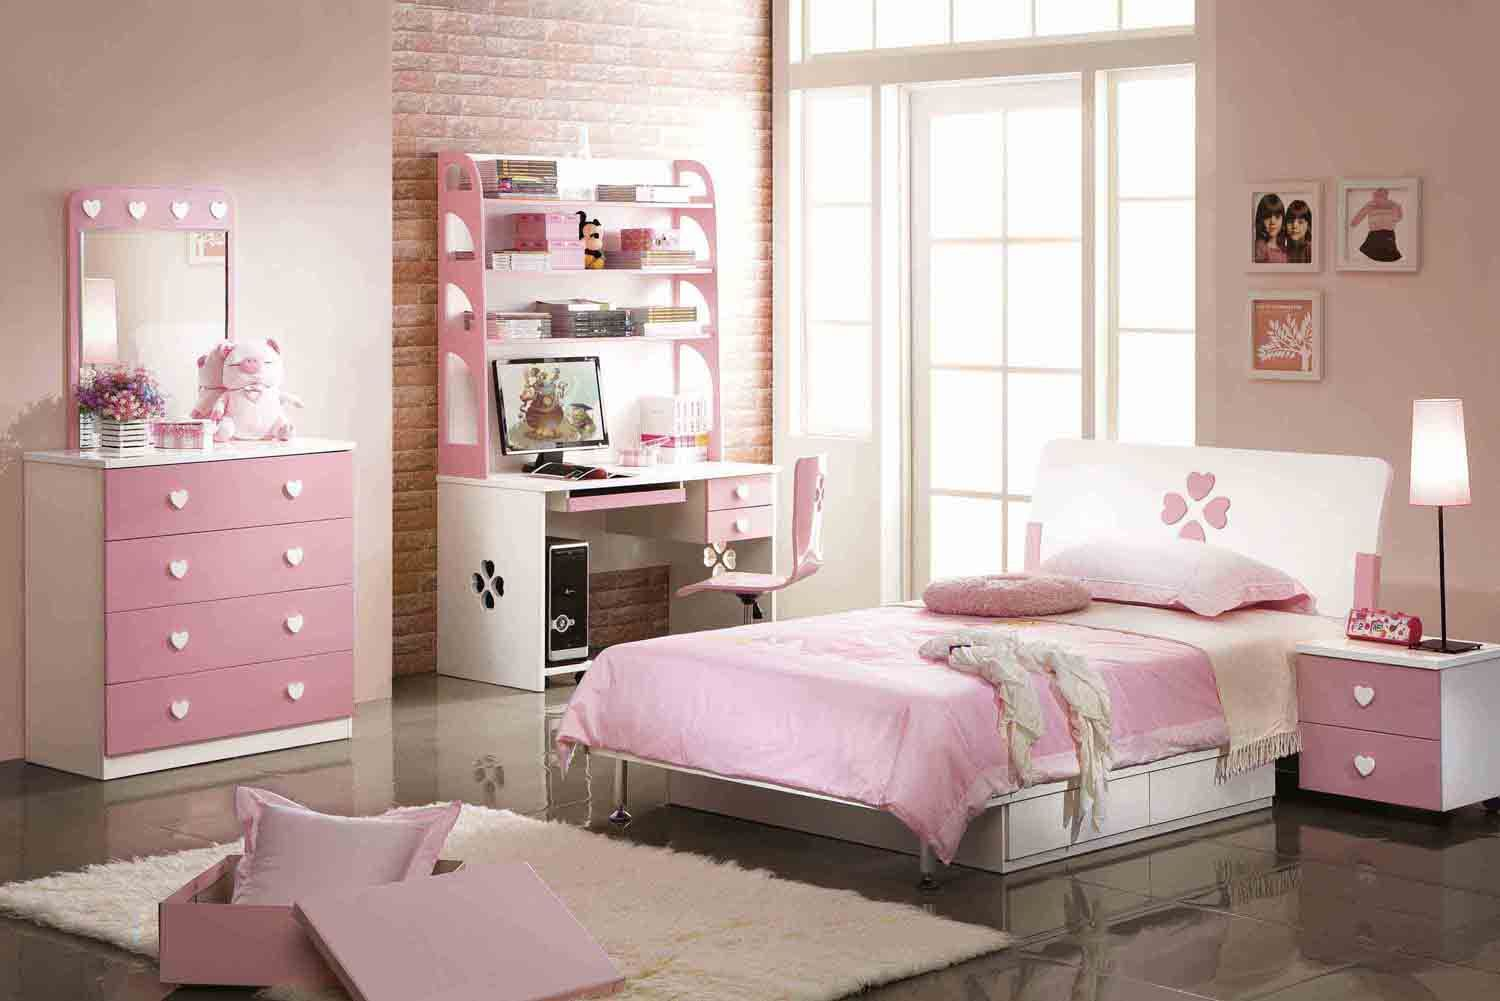 Pink Room Ideas Pink Bedroom Photos  Design Ideas 20172018  Pinterest  Pink